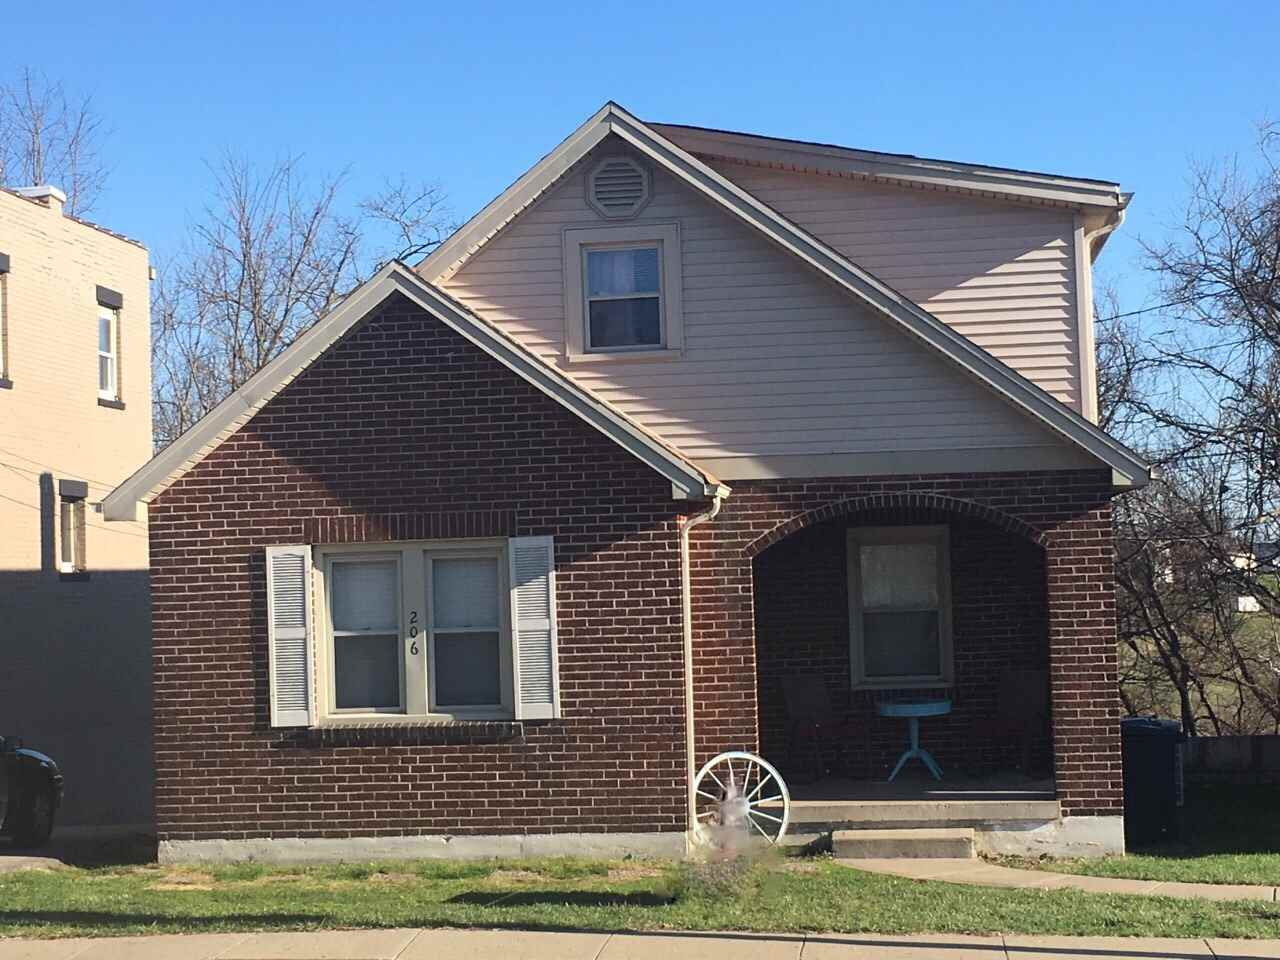 Photo 1 for 206 Main St Williamstown, KY 41097